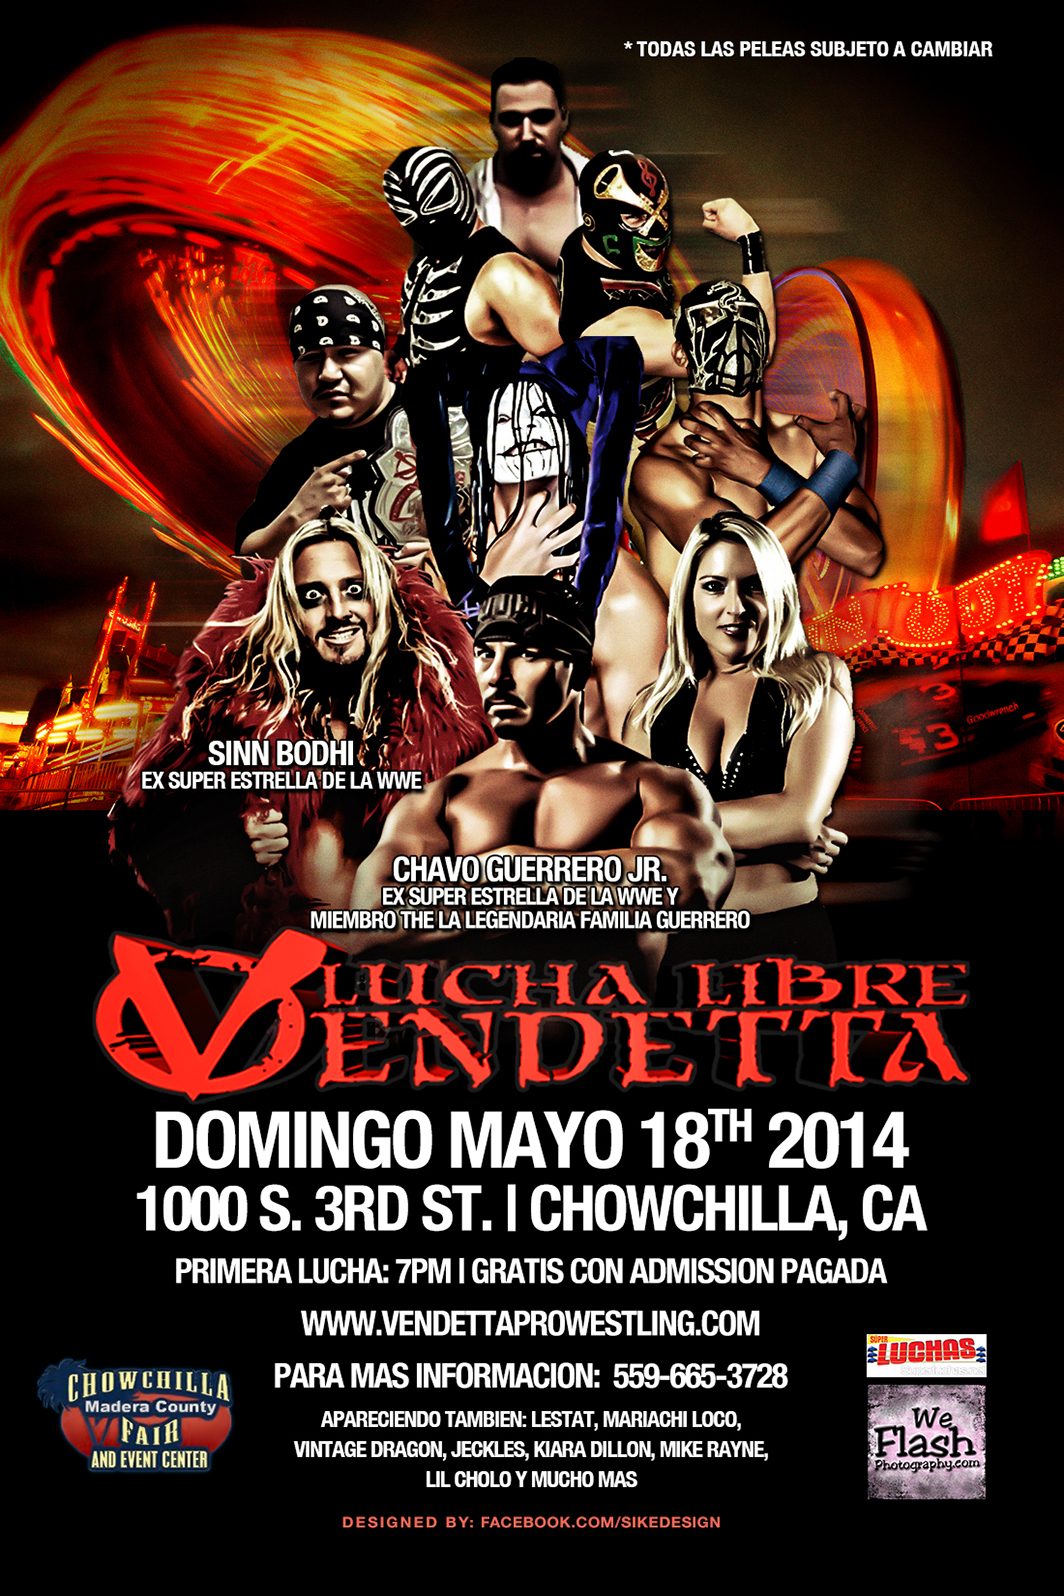 Chowchilla-Madera County Fair 2014 Spanish event flyer